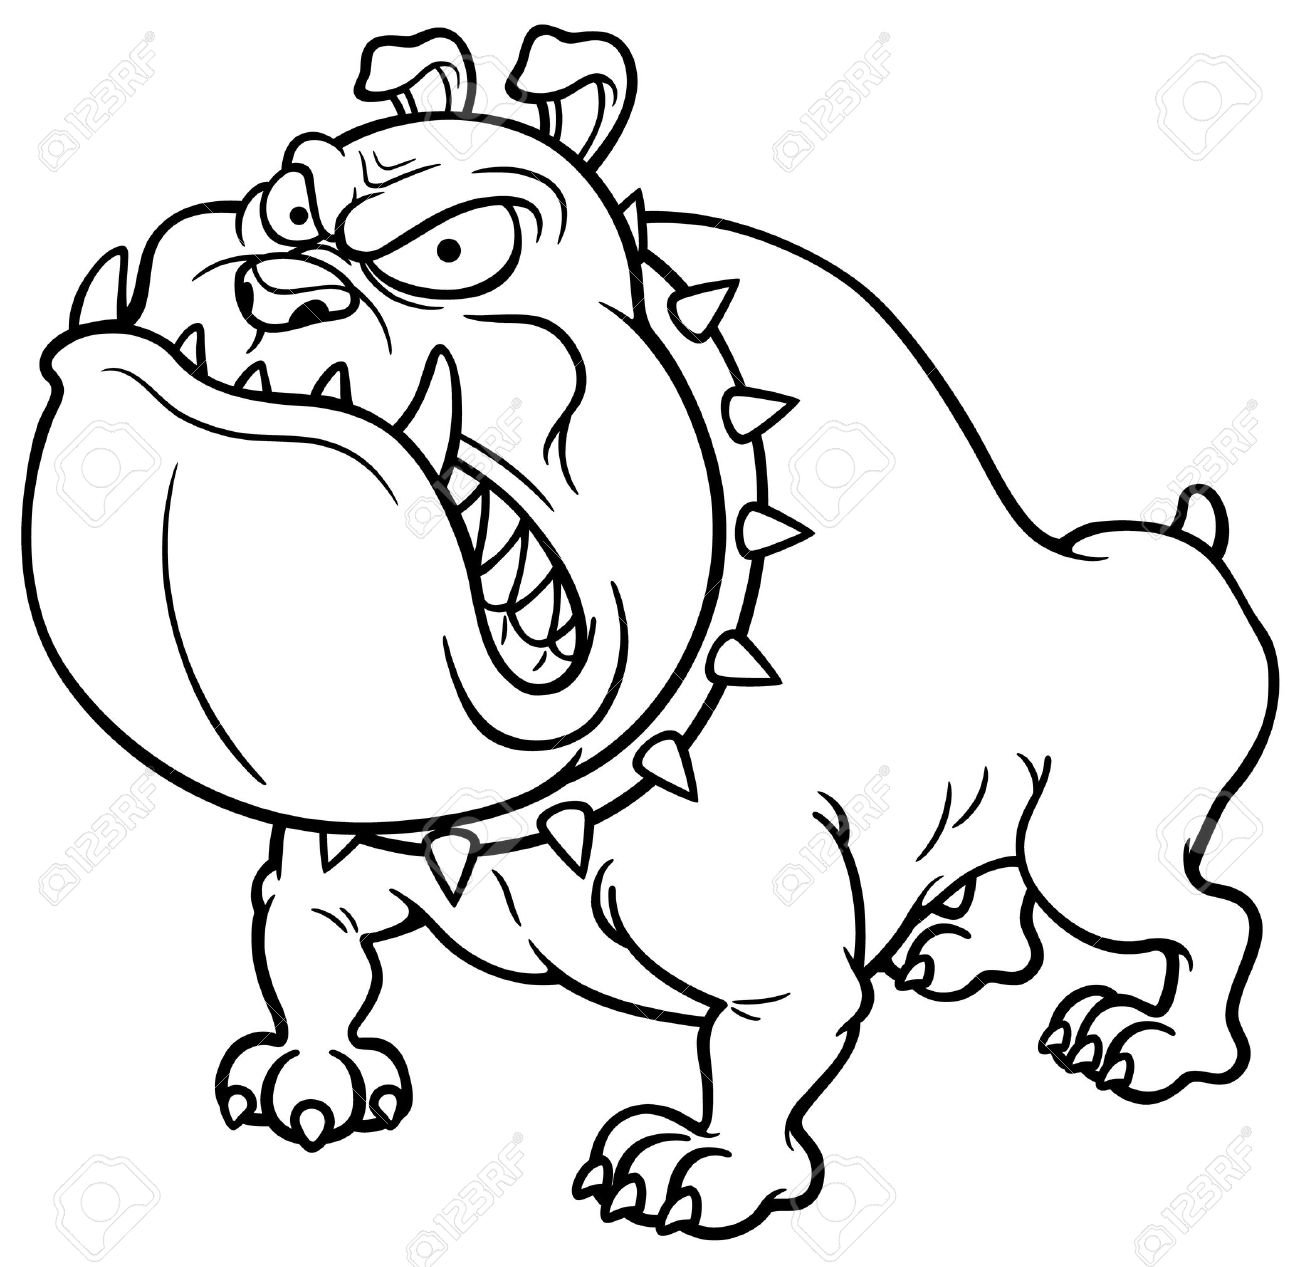 vector illustration of angry dog coloring book stock vector 28100814 - Dog Coloring Book